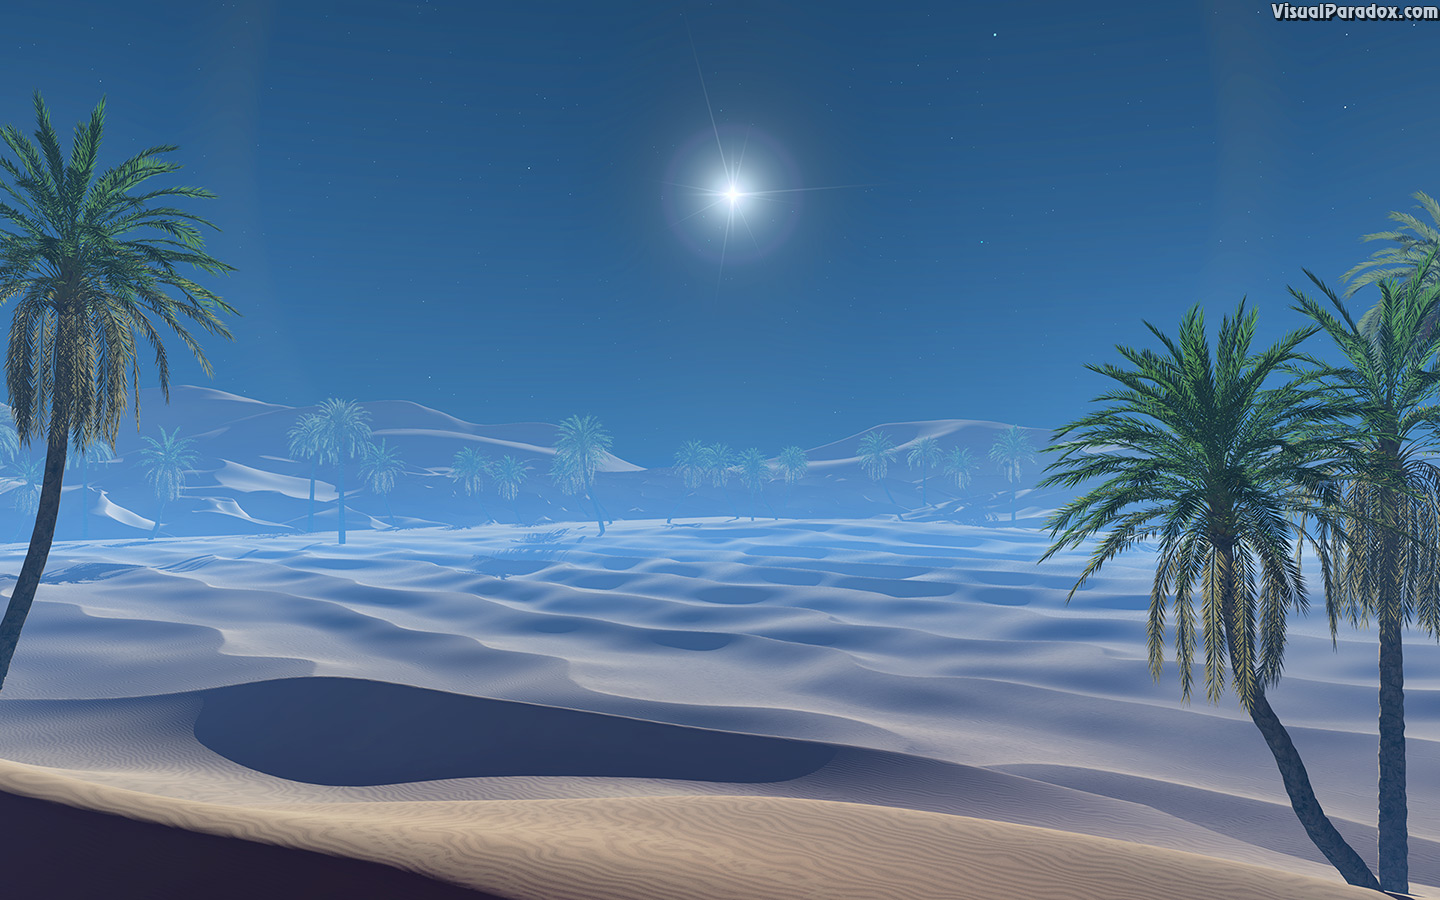 arabian, beautiful, bethlehem, bible, blue, bright, burst, christmas, date, desert, dry, dune, dunes, gift, grass, green, hill, holiday, holy, jesus, landscape, light, middle, mountains, nature, night, oasis, outdoor, palm, park, pregnant, sahara, sand, scenery, season, sign, sky, star, stars, story, sunset, supernova, symbol, three, travel, tree, trees, wise, xmas, 3d, wallpaper